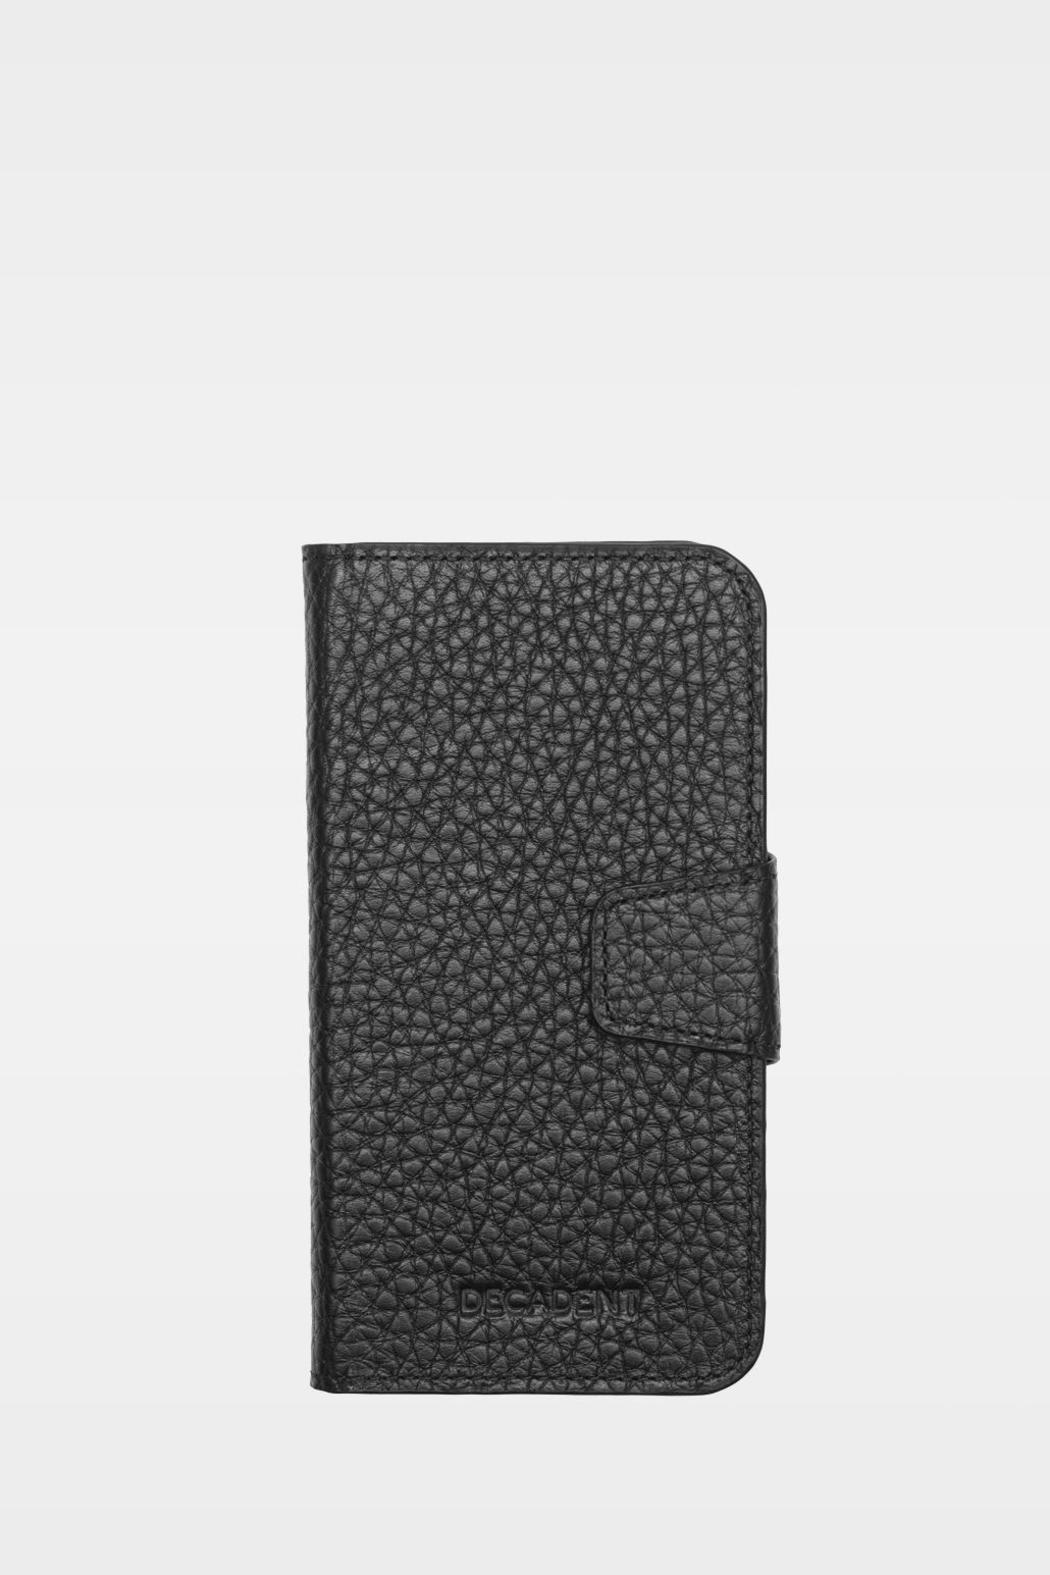 Decadent Copenhagen Iphone 6 Flip Cover - Main Image